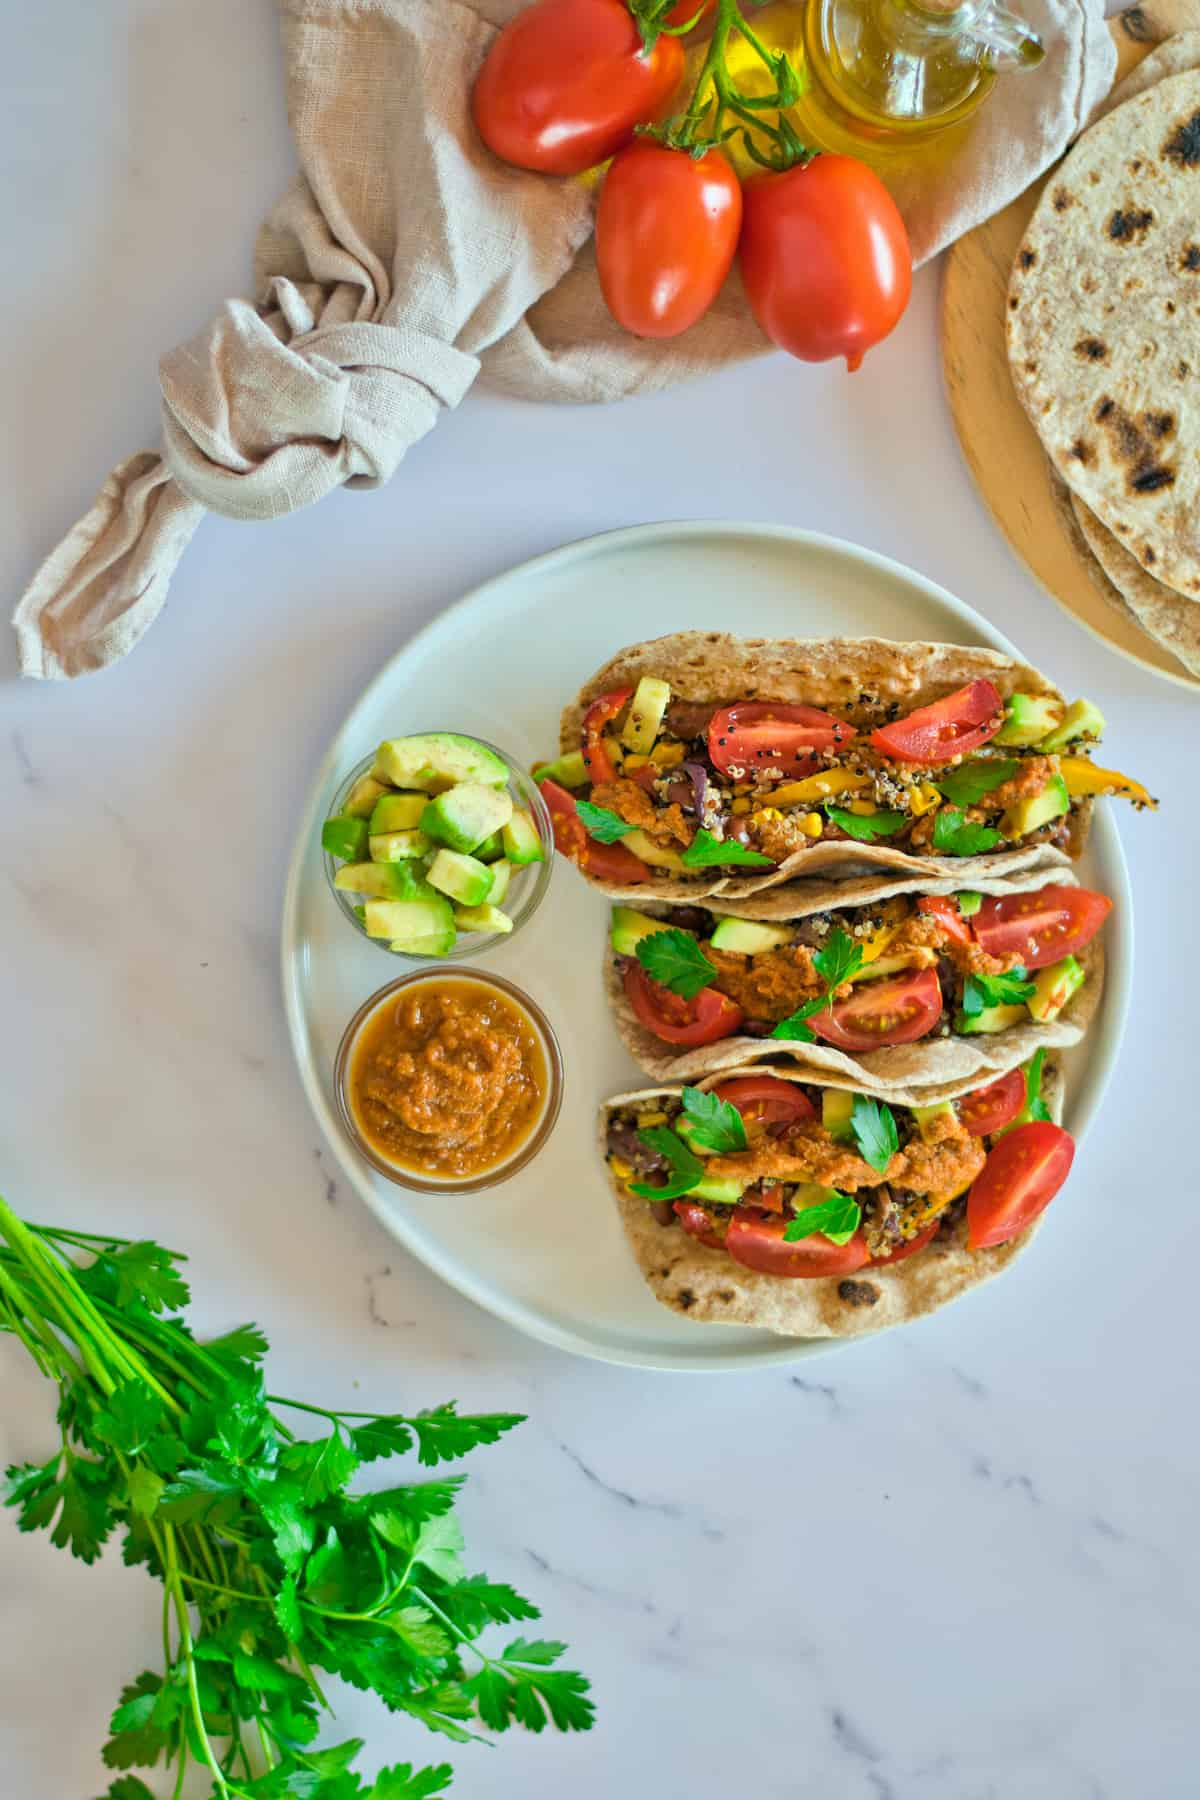 Quinoa tacos on a white plate on a marble table with cilantro, tomatoes, and tortillas.